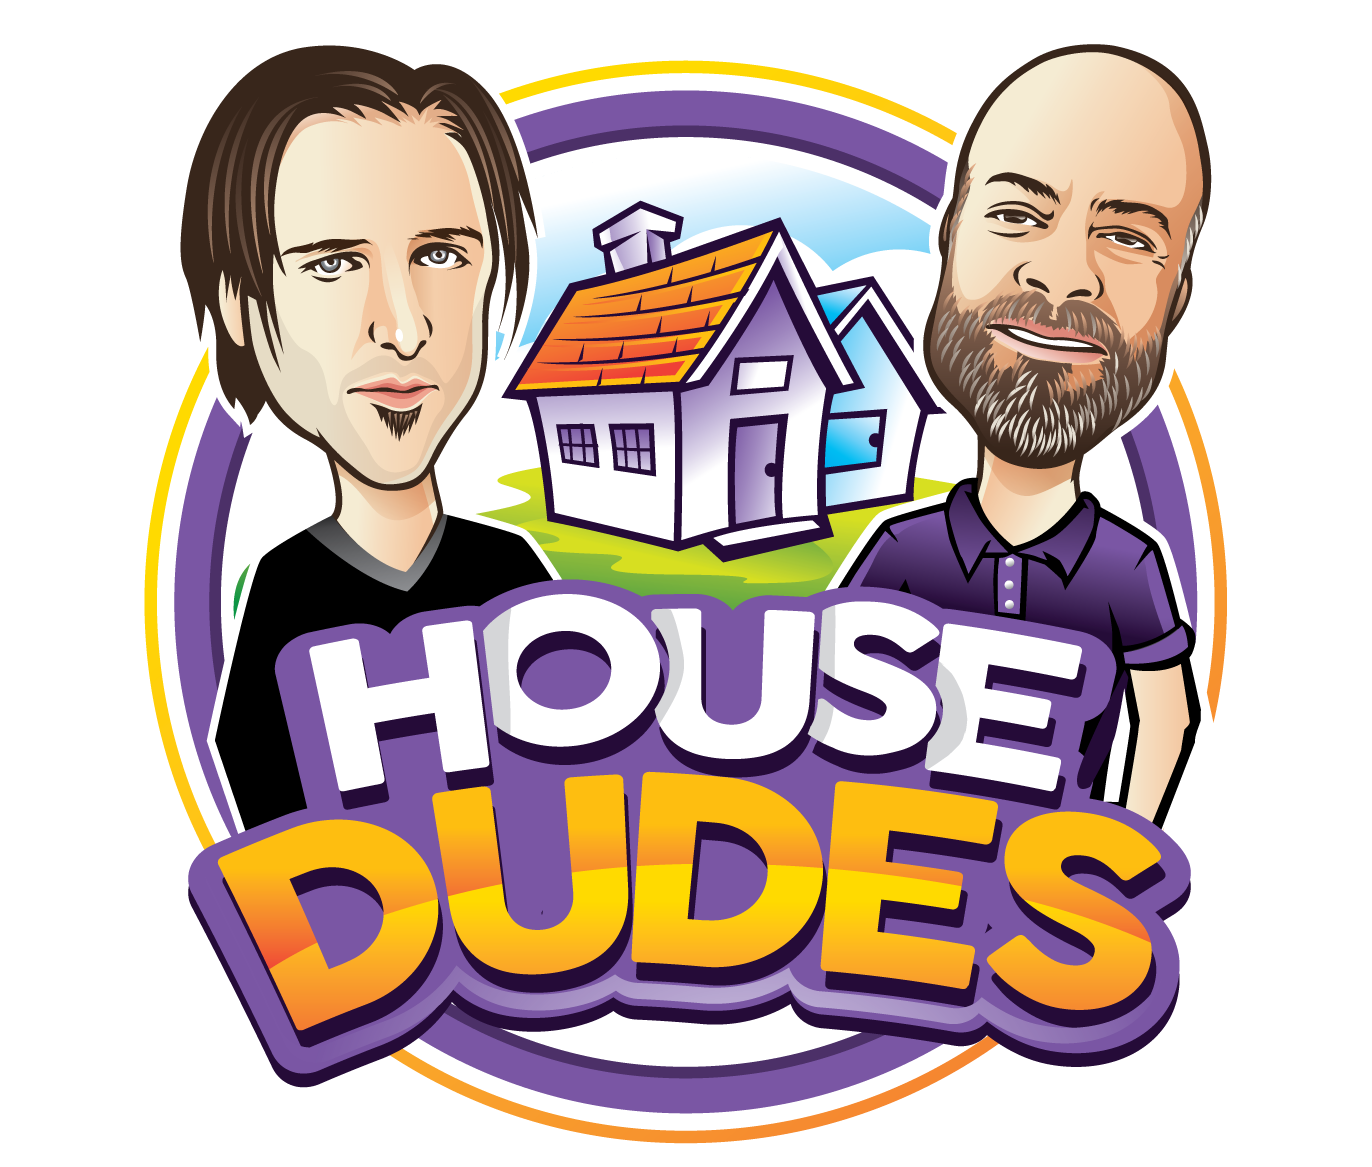 House Dudes   We Sell Discounted Properties logo